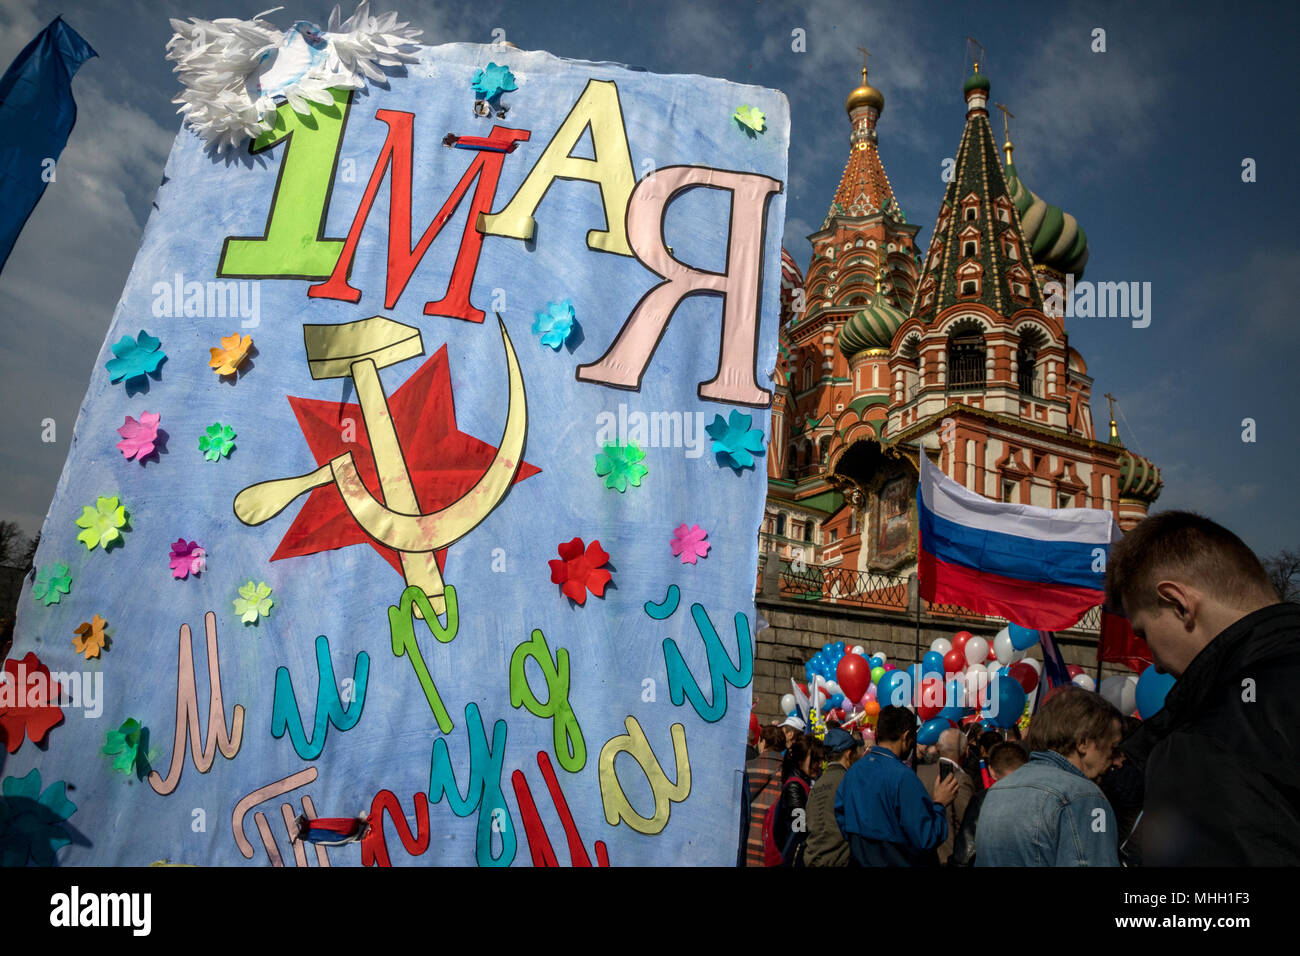 Moscow, Russia. 1st May, 2018.  A rally held by trade unions in Red Square marks International Workers' Day in central Moscow, Russia Credit: Nikolay Vinokurov/Alamy Live News - Stock Image